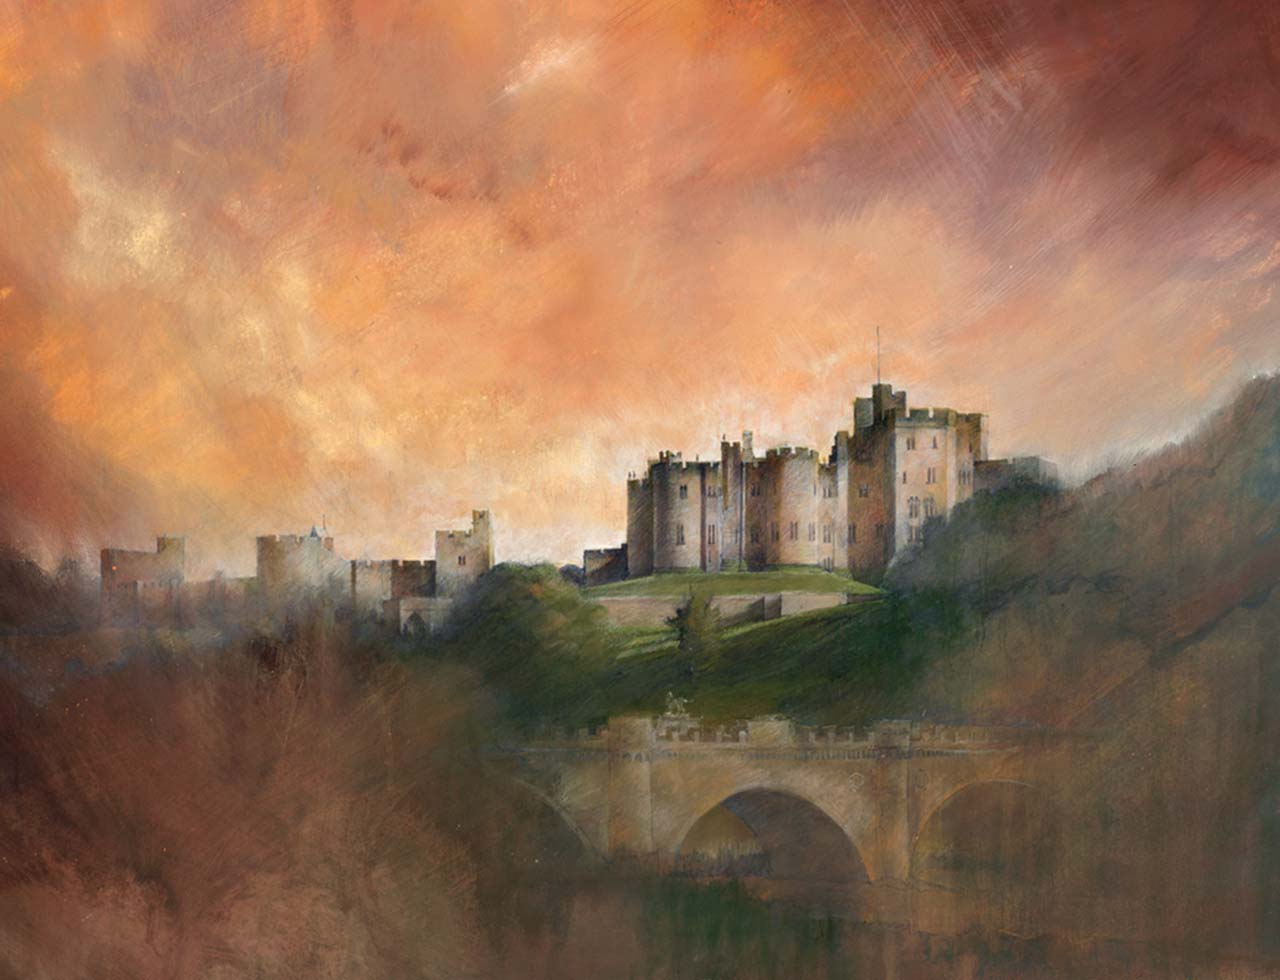 Painting of Alnwick Castle at sunset